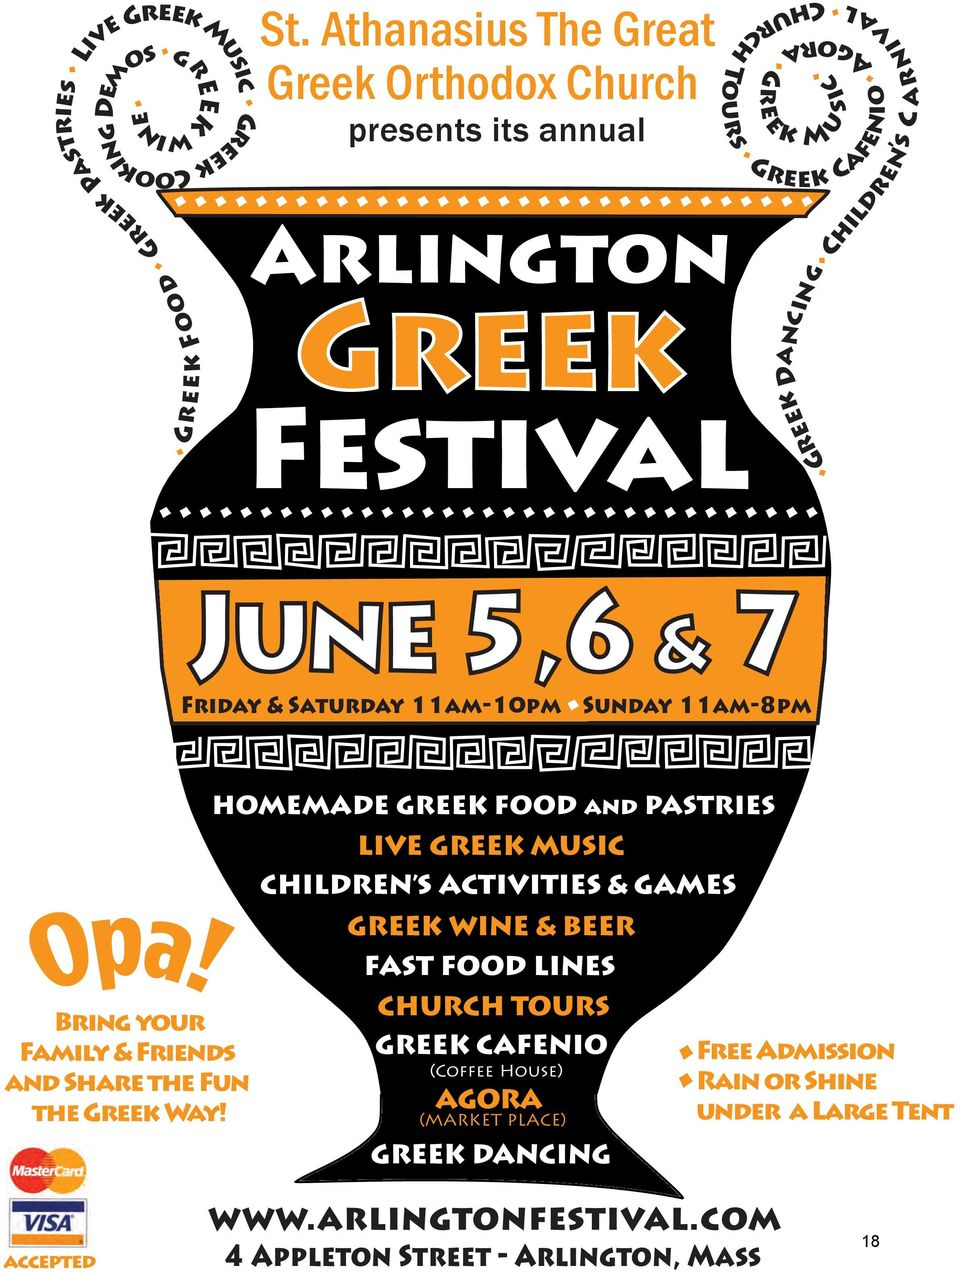 Athanasius The Great Greek Orthodox Church h Greek M e v os g Arlington Greek Festival June 5,6 & 7 Friday & Saturday 11am-10pm Sunday 11am-8pm HOMEMADE GREEK FOOD and PASTRIES LIVE GREEK